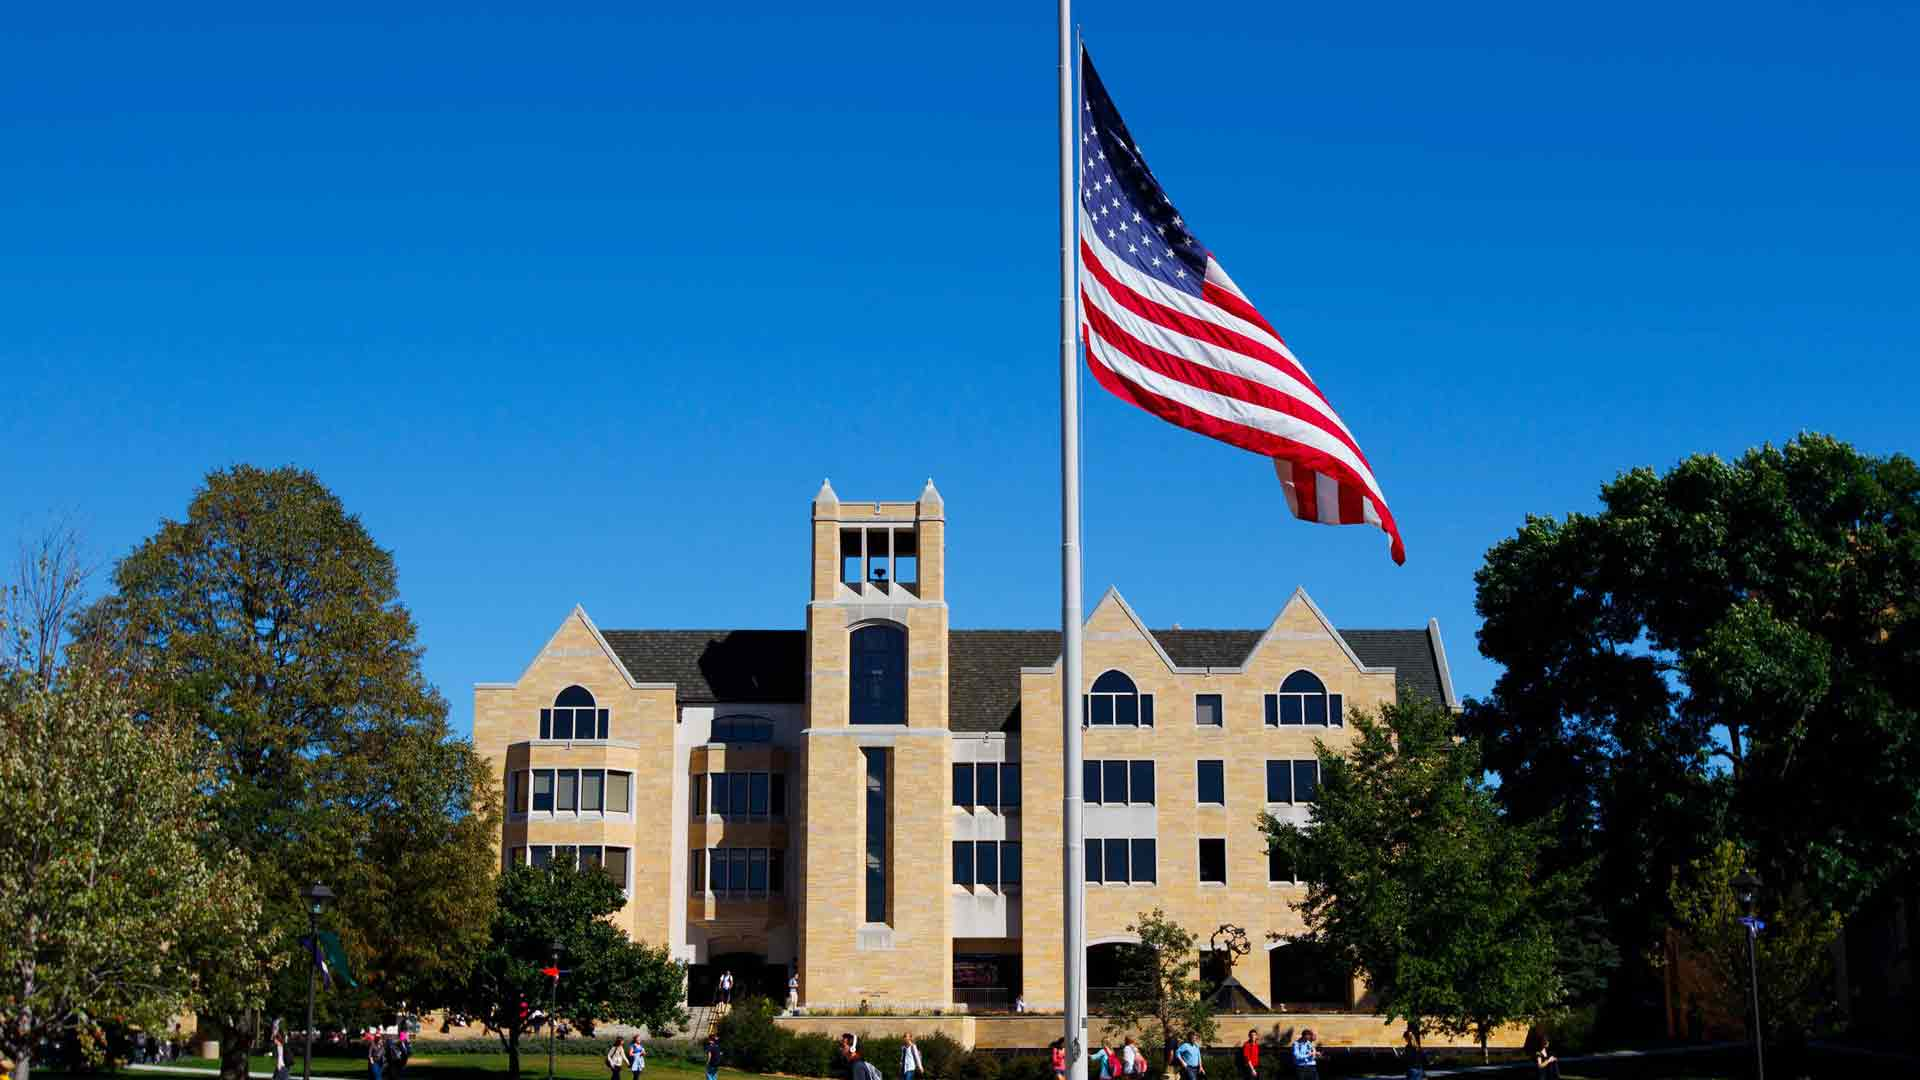 The American flag is prominent in front of the O'Shaughnessy Library on North Campus.